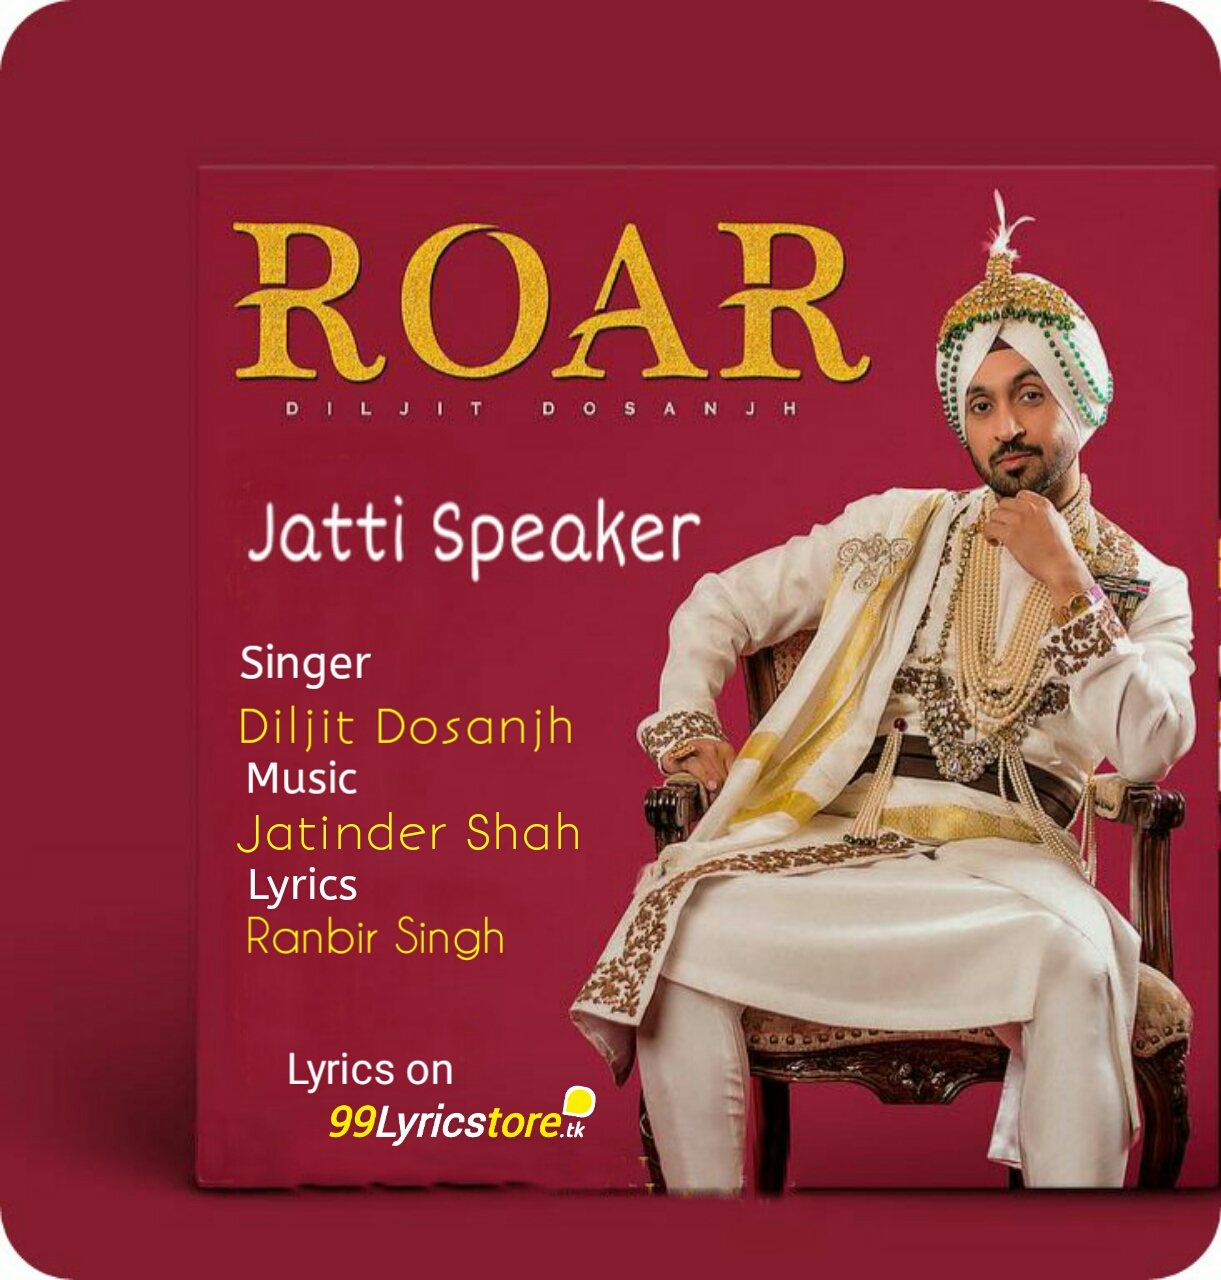 Roar Diljit Dosanjh Punjabi Songs Lyrics, Jatti Speaker Lyrics Roar Diljit Dosanjh, Diljit Dosanjh Punjabi Song Jatti Speaker Lyrics, Diljit Dosanjh Jatti Speaker Song Images, Roar Diljit Dosanjh Album Song Lyrics, Roar Diljit Dosanjh Album images, Jatti Speaker Punjabi Song Images, Jatindar Shah Song Lyrics, Ranbir Singh Punjabi Song Lyrics, Latest Punjabi Song Lyrics 2018, Roar (2018) Album Songs Lyrics,